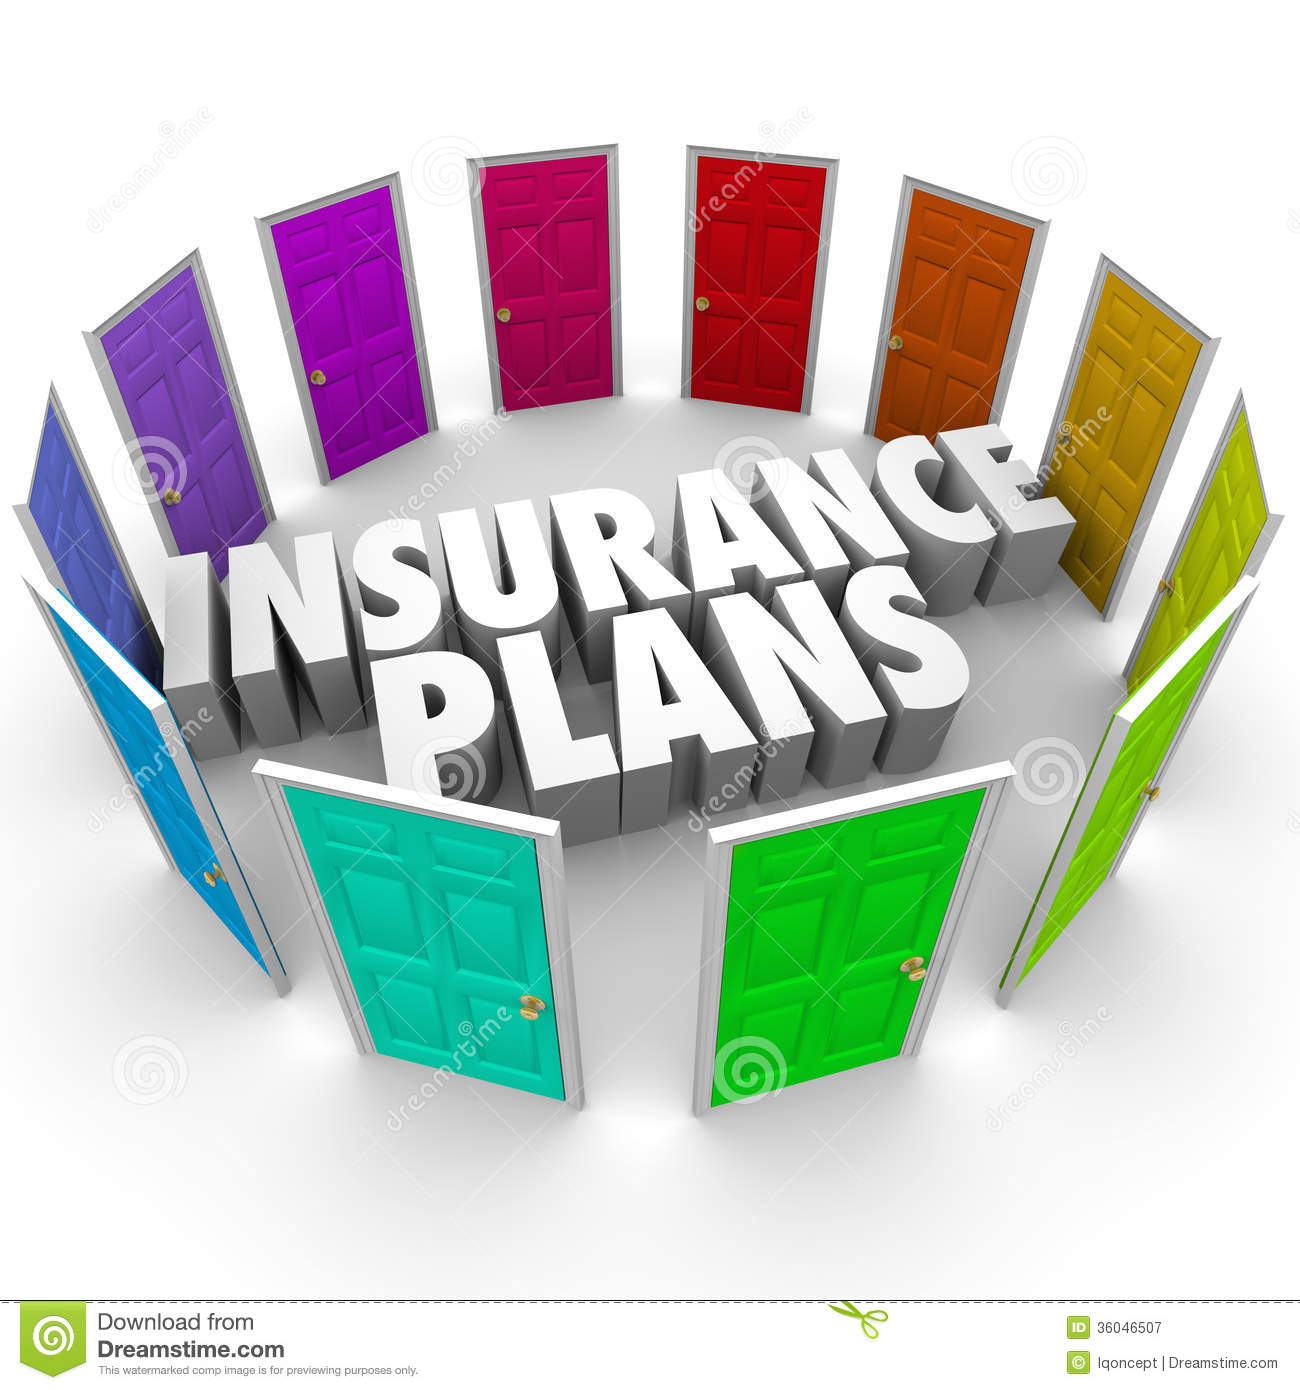 insurance-plans-many-options-health-care-choices-doors-words-middle-colored-illustrating-several-confusing-you-36046507.jpg